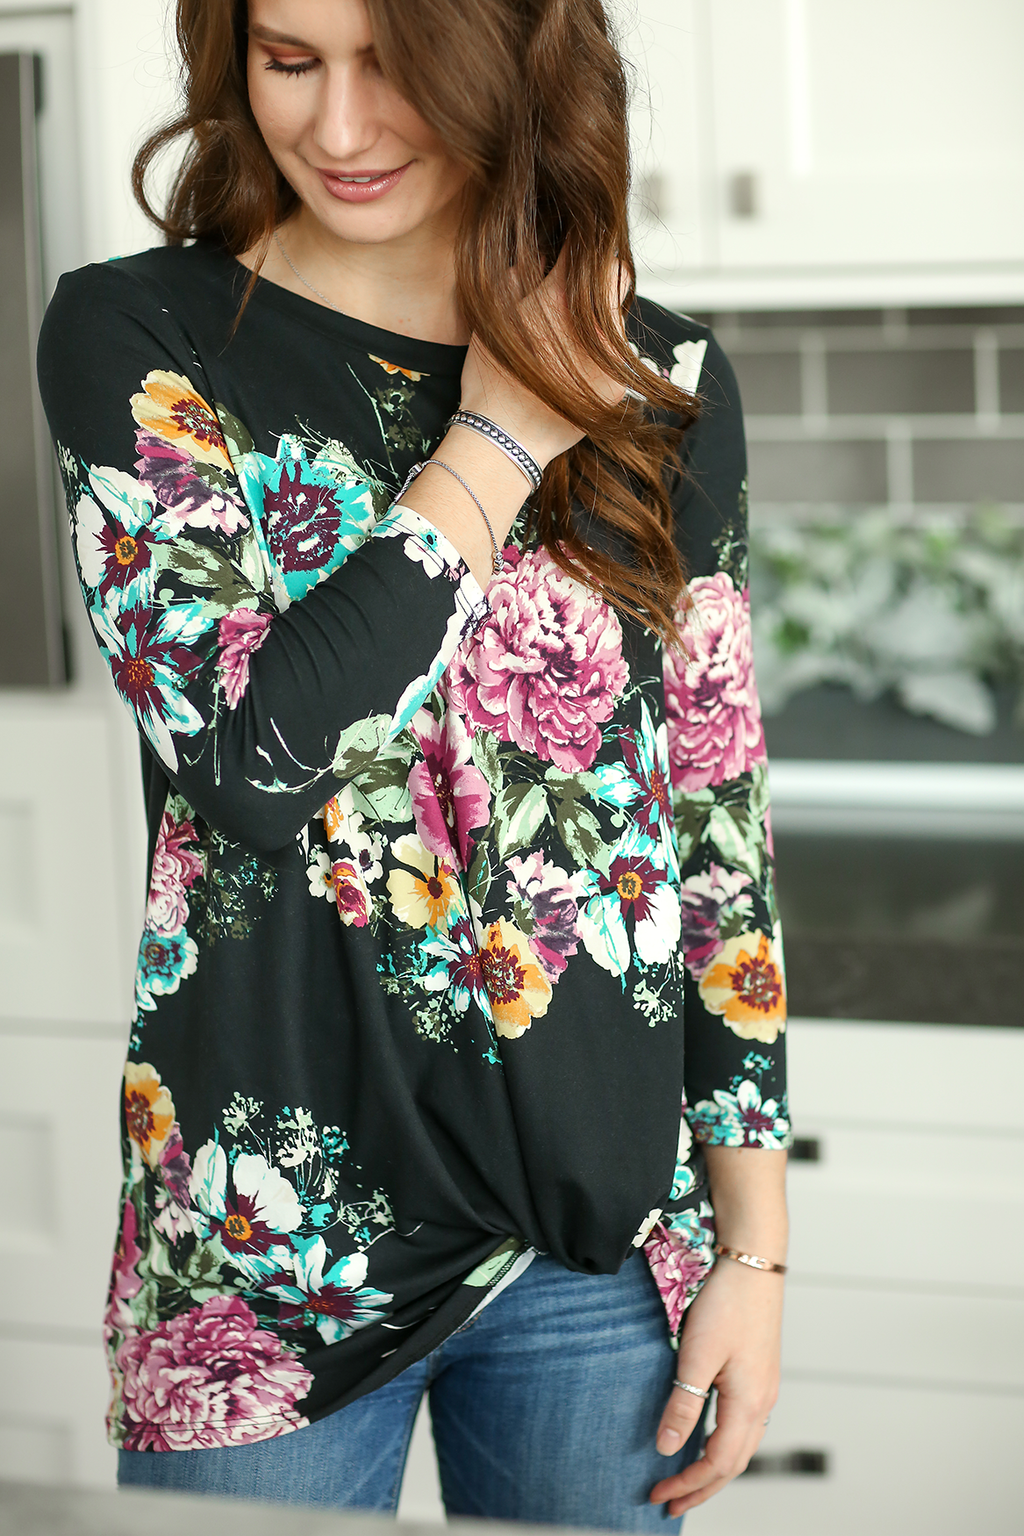 Always a Treat 3/4 Sleeve Floral Twist Tee in Black